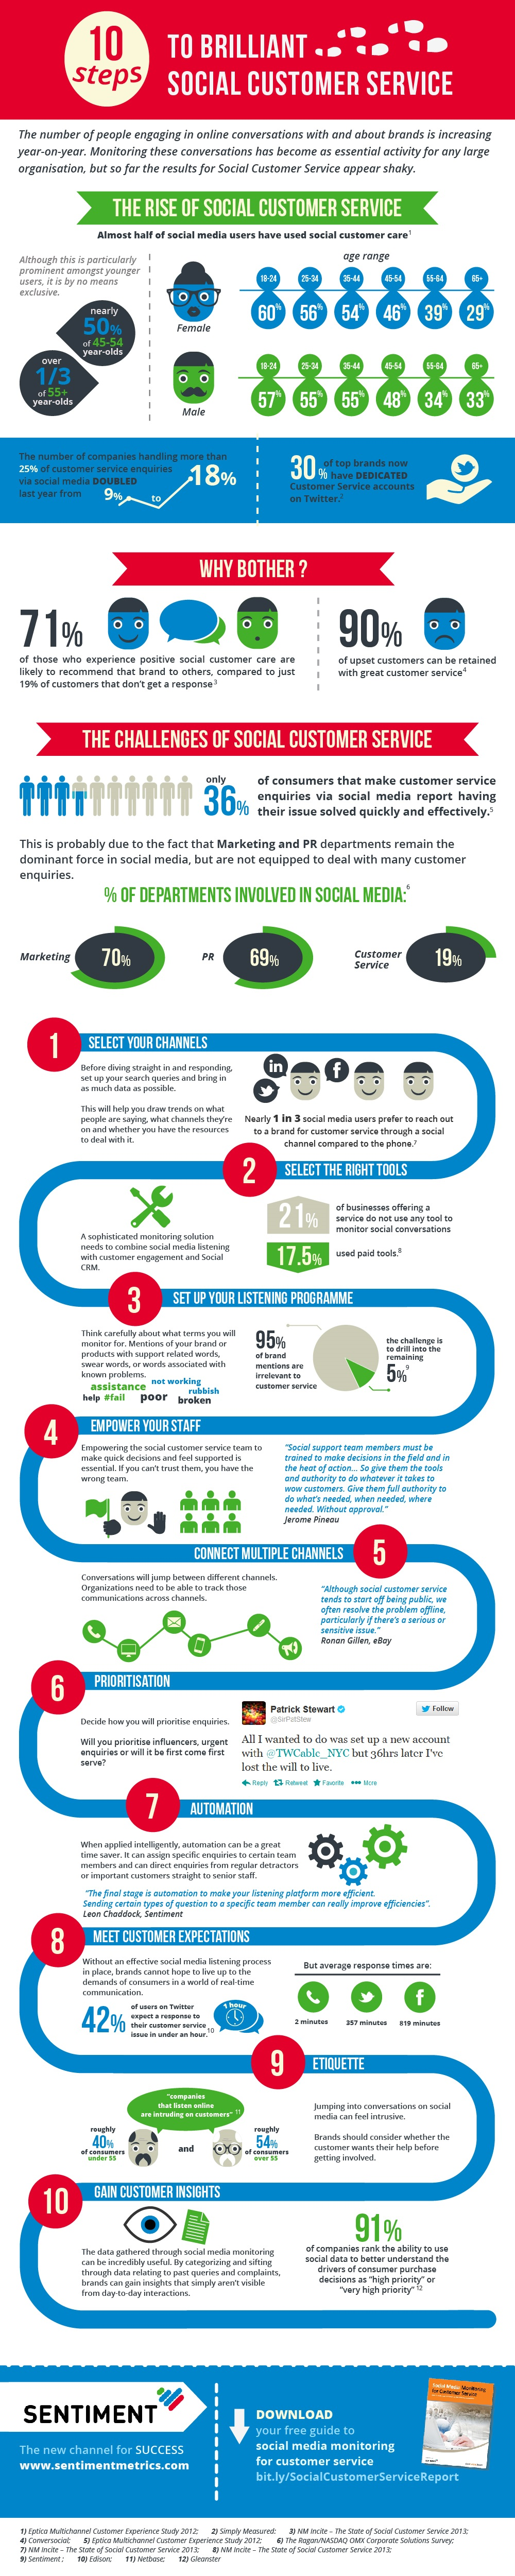 10-steps-social-customer-service